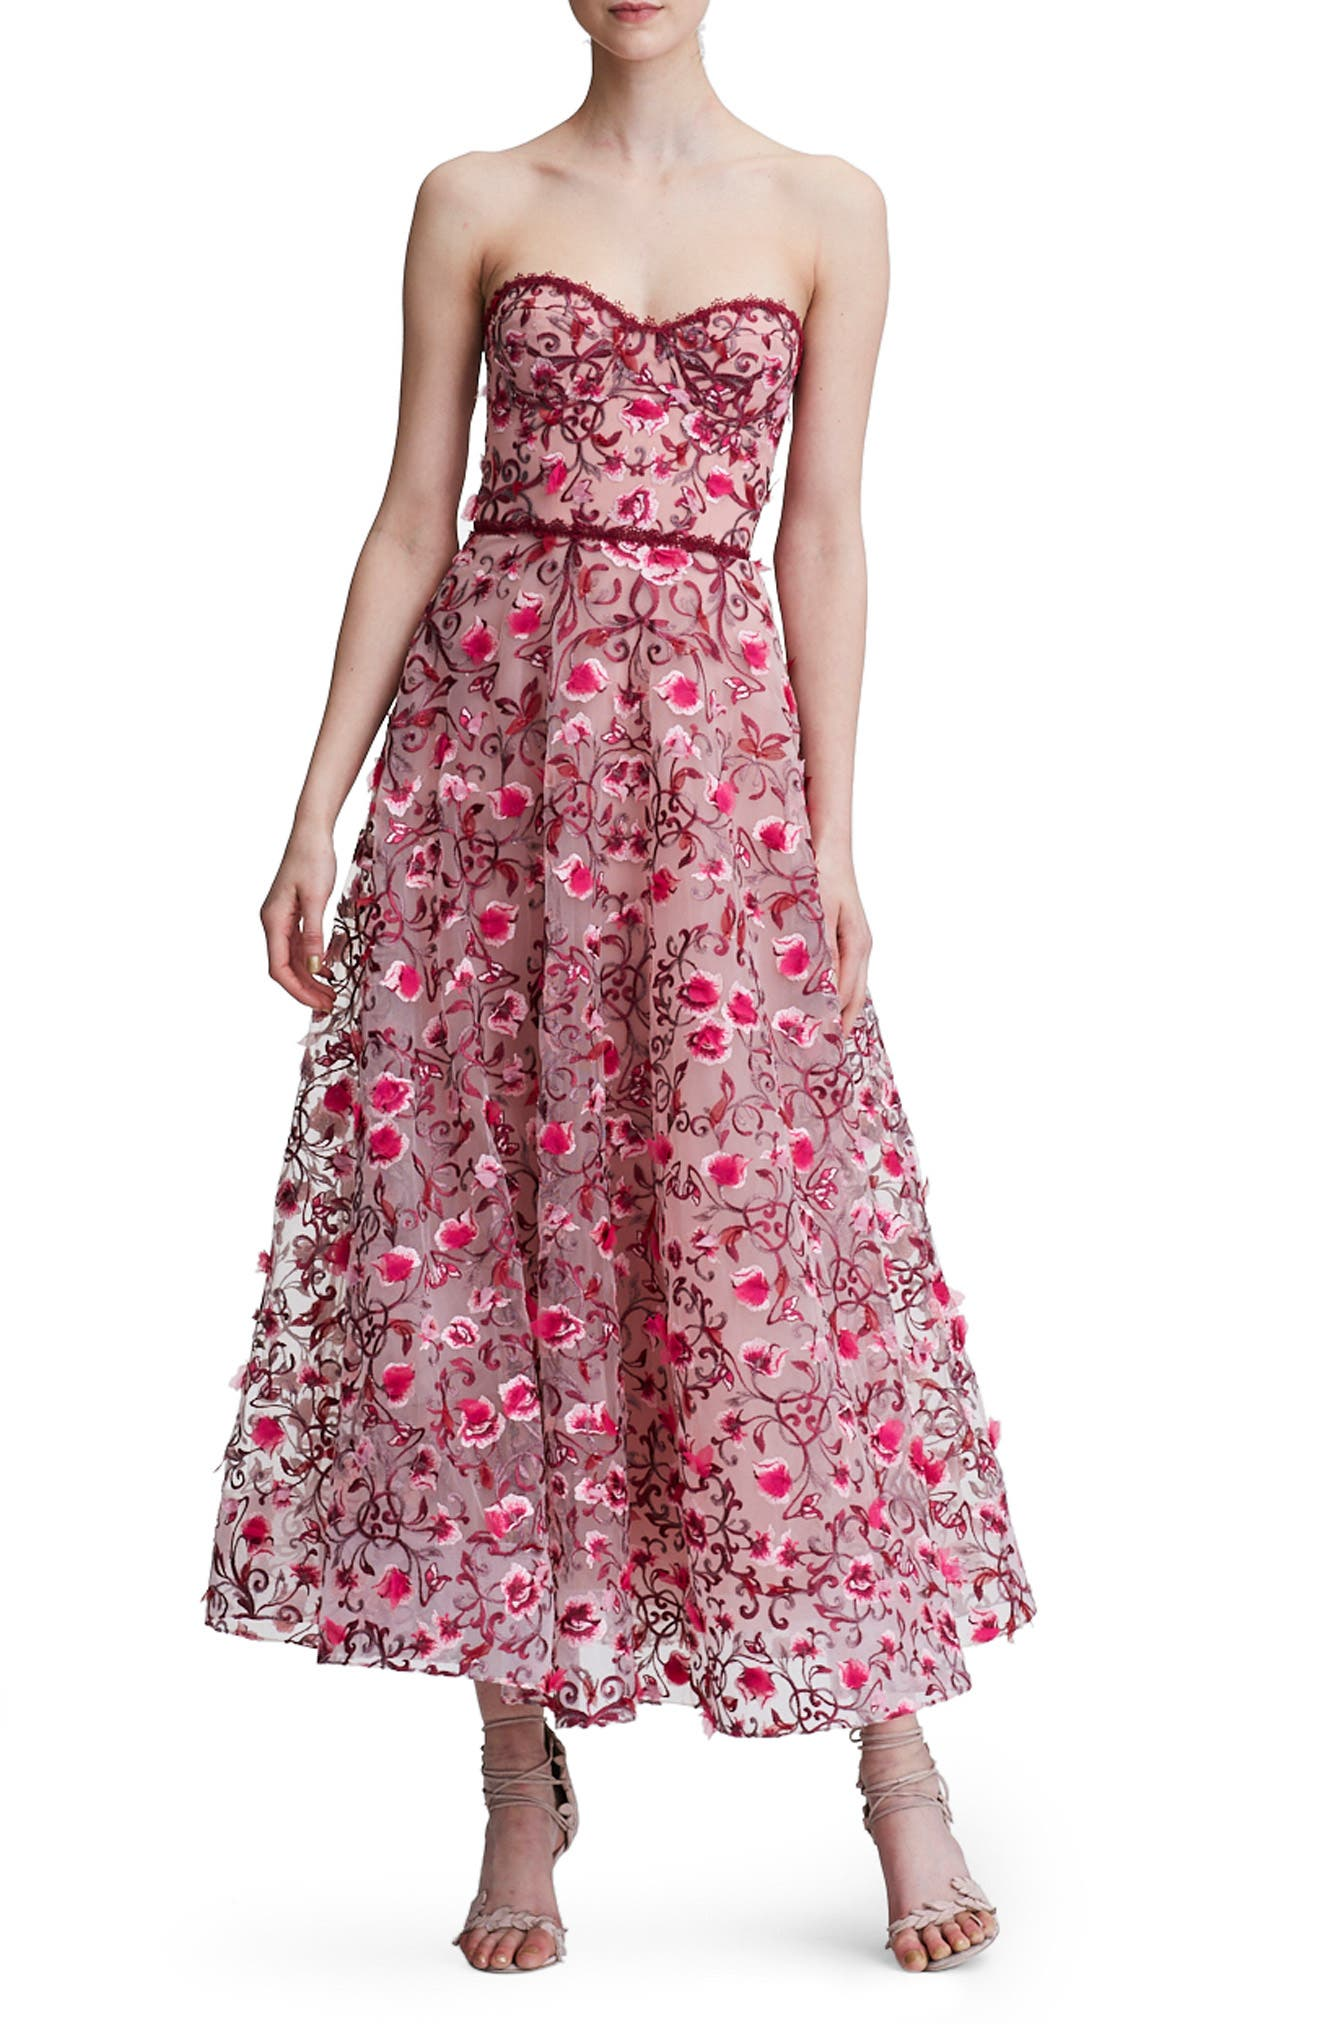 Floral Embroidered Strapless Tea Length Gown,                             Main thumbnail 1, color,                             650